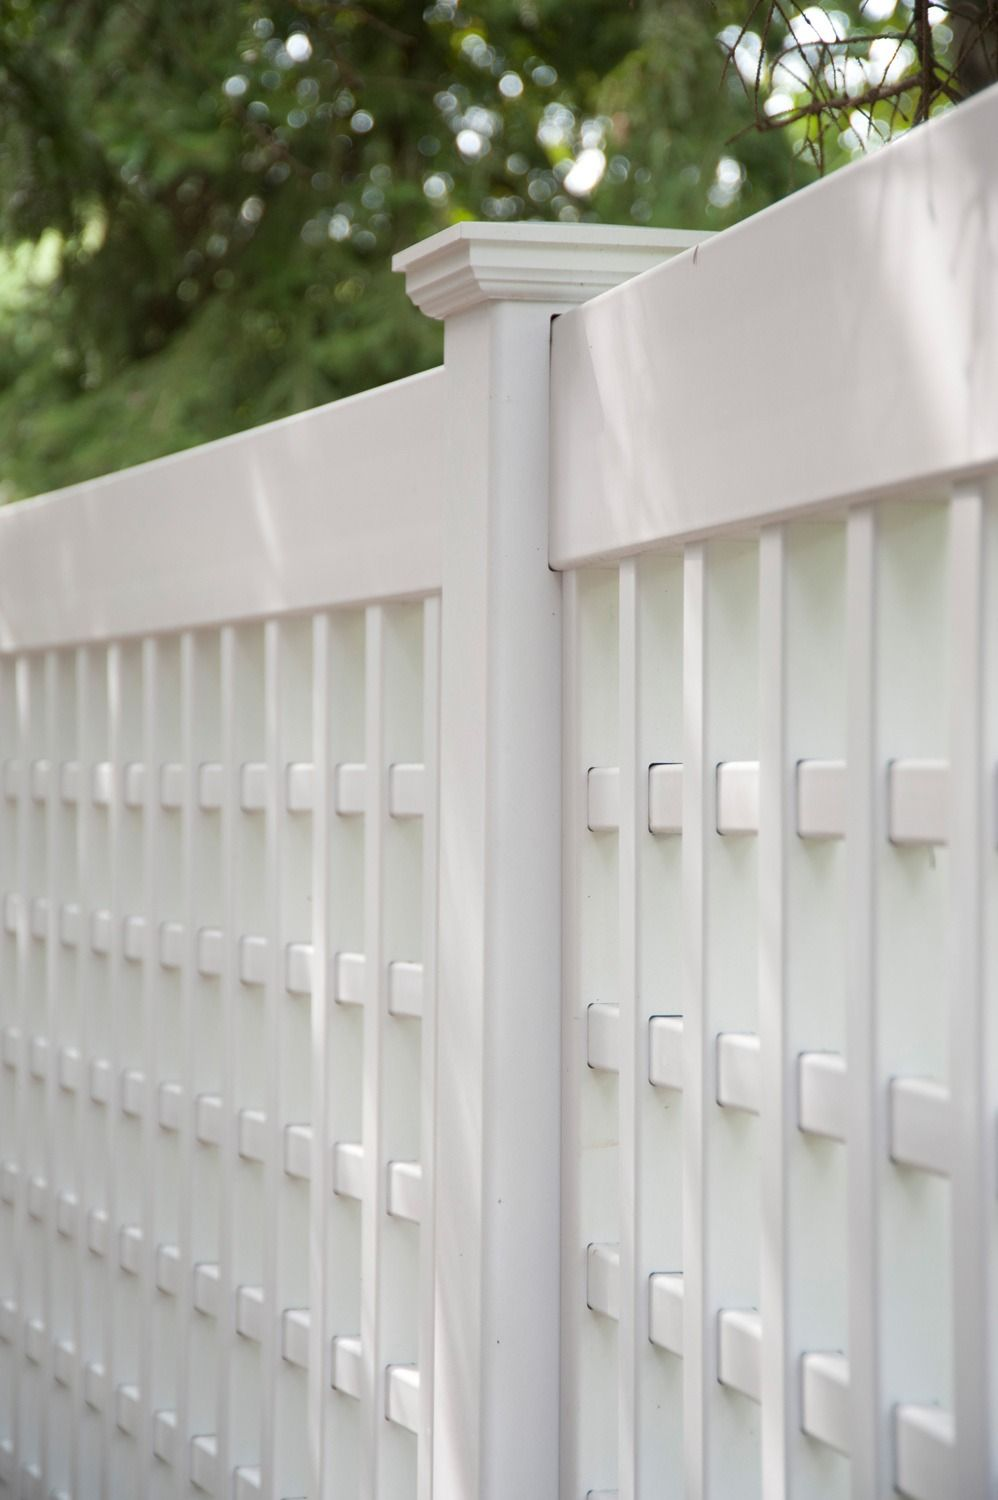 Images of Illusions PVC Vinyl Wood Grain and Color Fence | Lattice ...